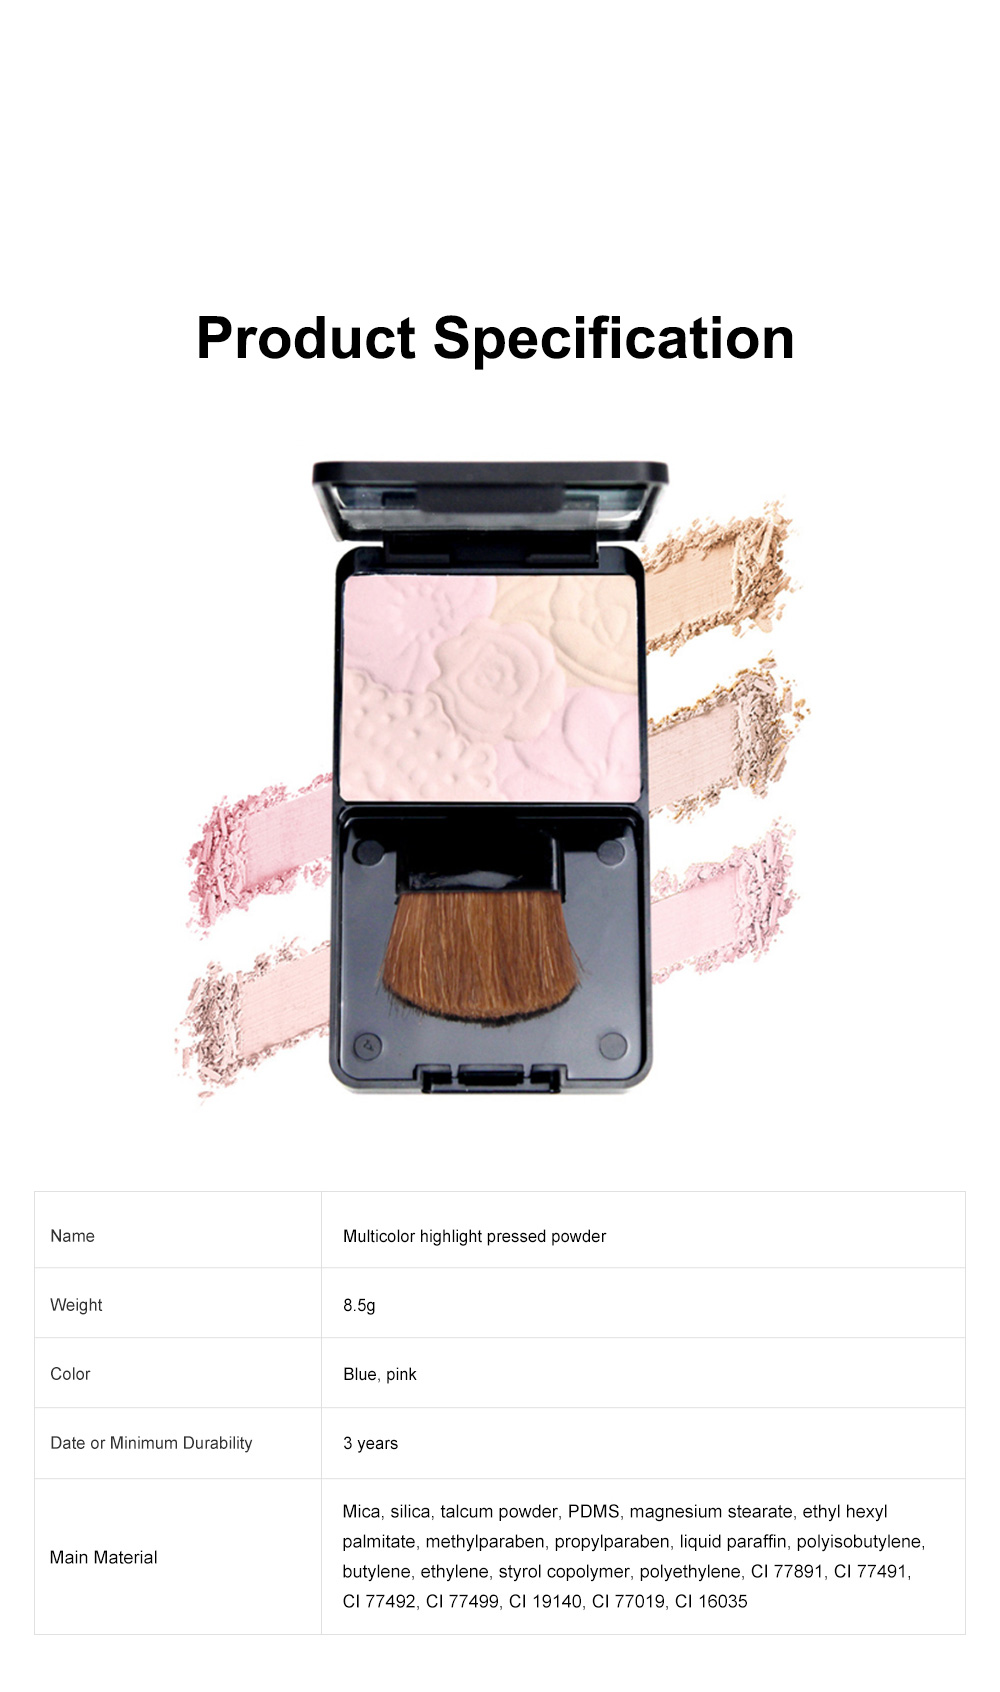 Fine Exquisite Flower Model Multicolor Highlight Pressed Powder Skin Brighten Shading Powder Cosmetic Accessories 6